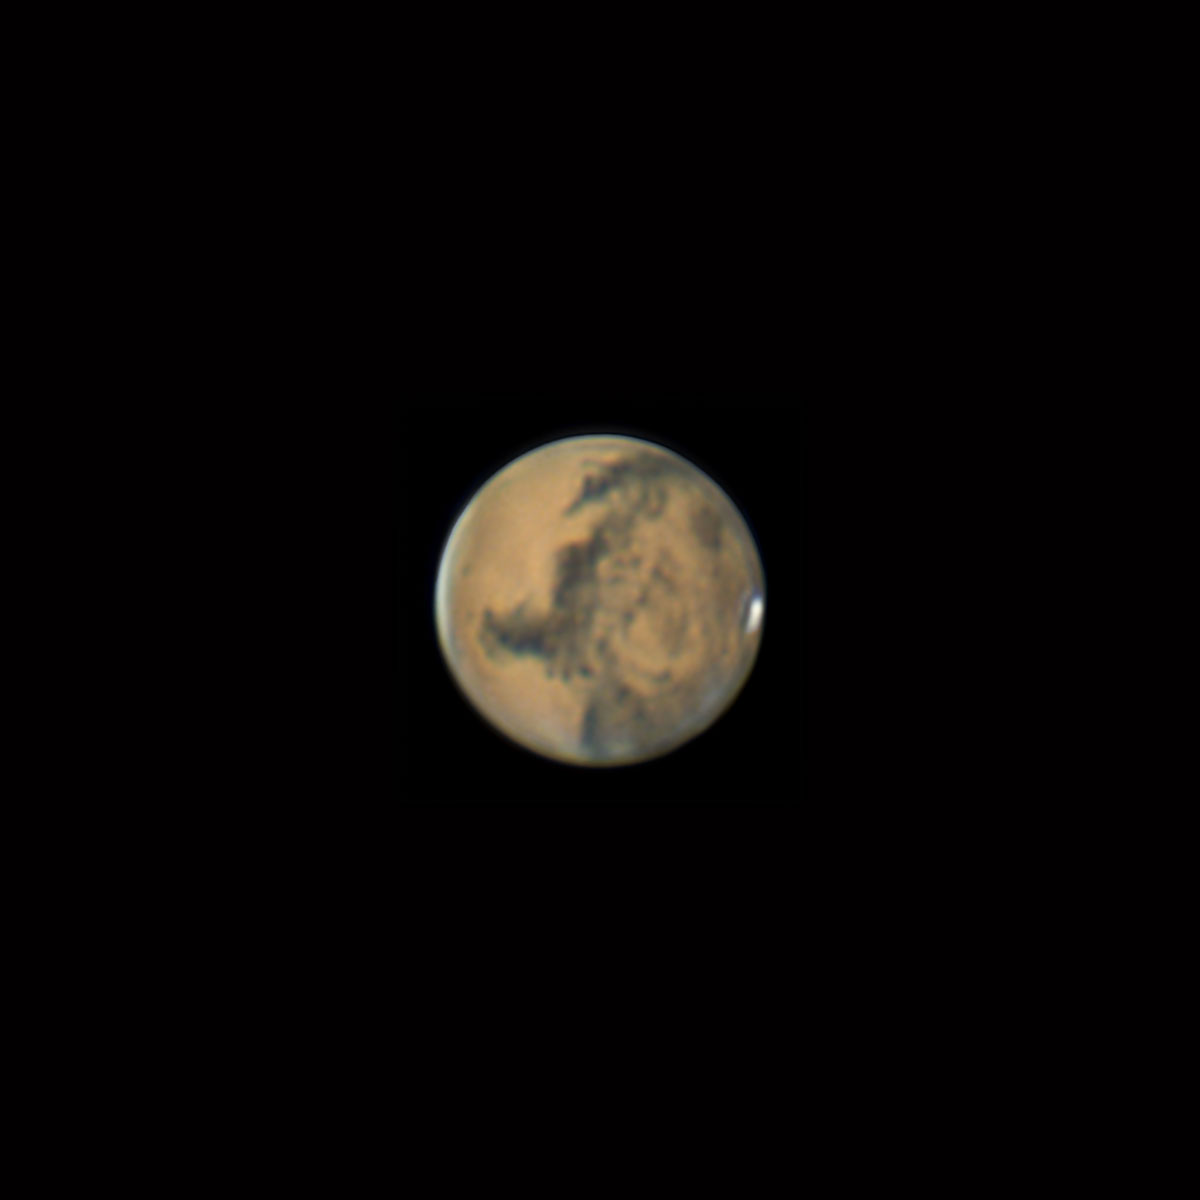 Solar-System-Peter-Patonai-Mars-One-Week-After-Opposition